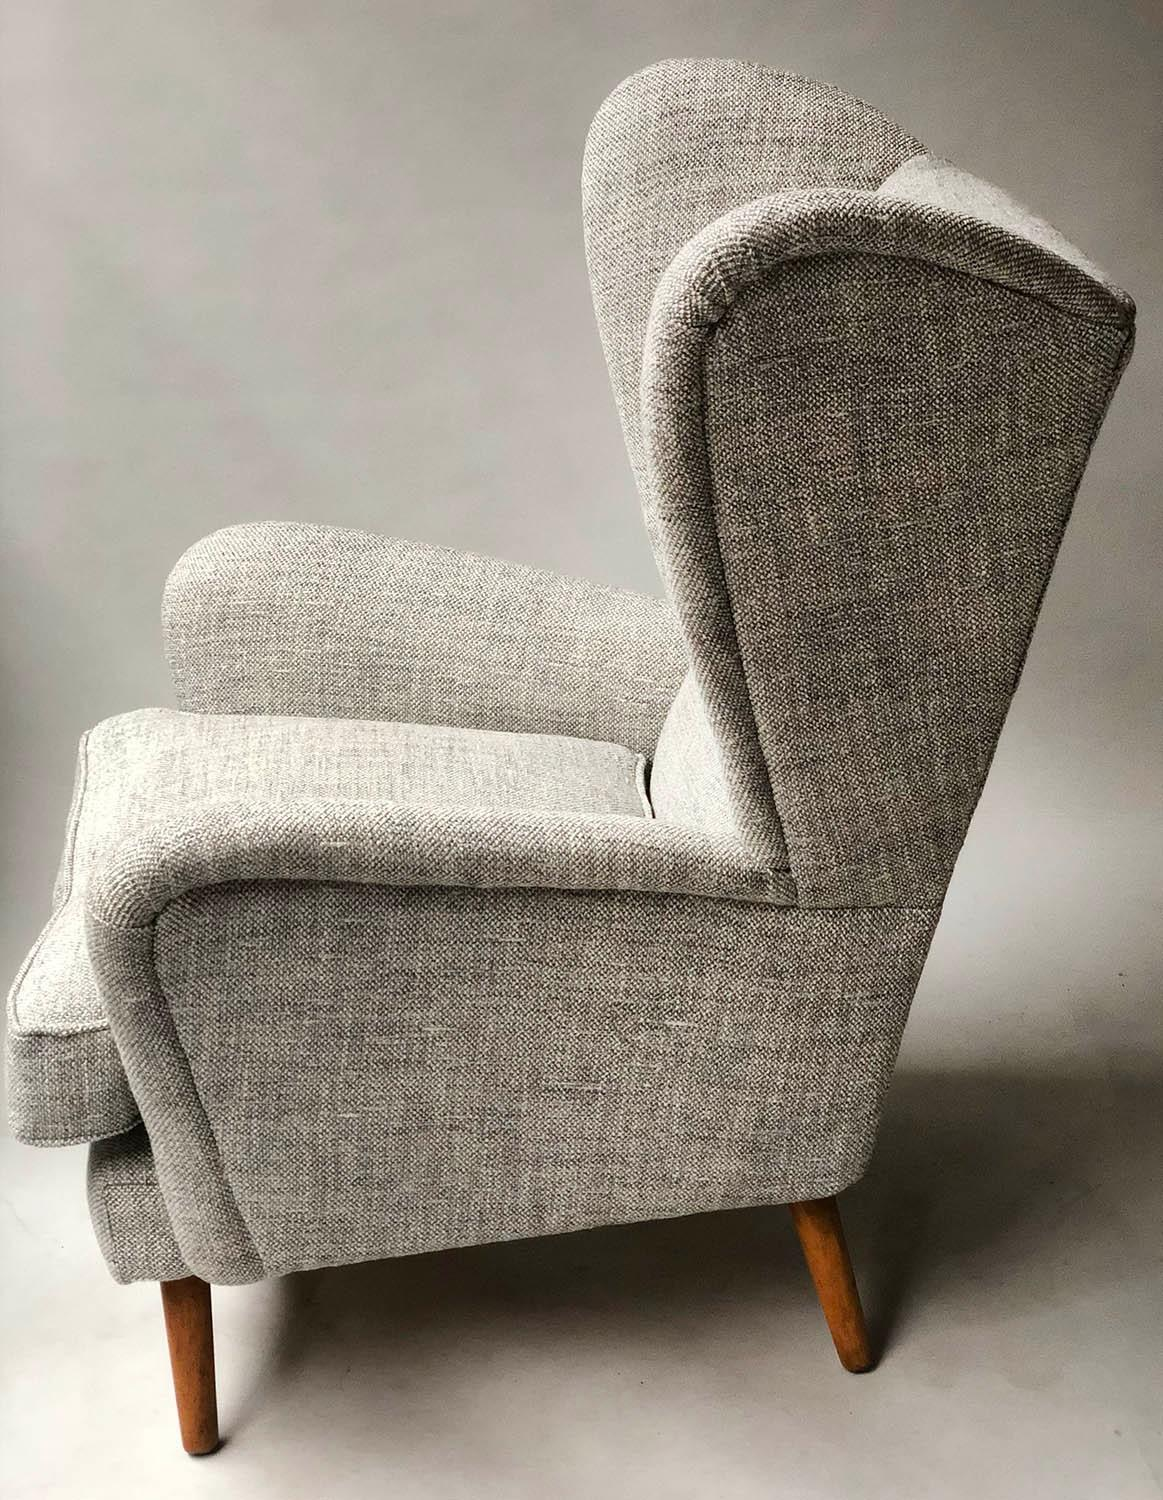 HOWARD KEITH ARMCHAIR, 1950's lounge chair newly upholstered in oatmeal soft tweed with splay - Image 5 of 5